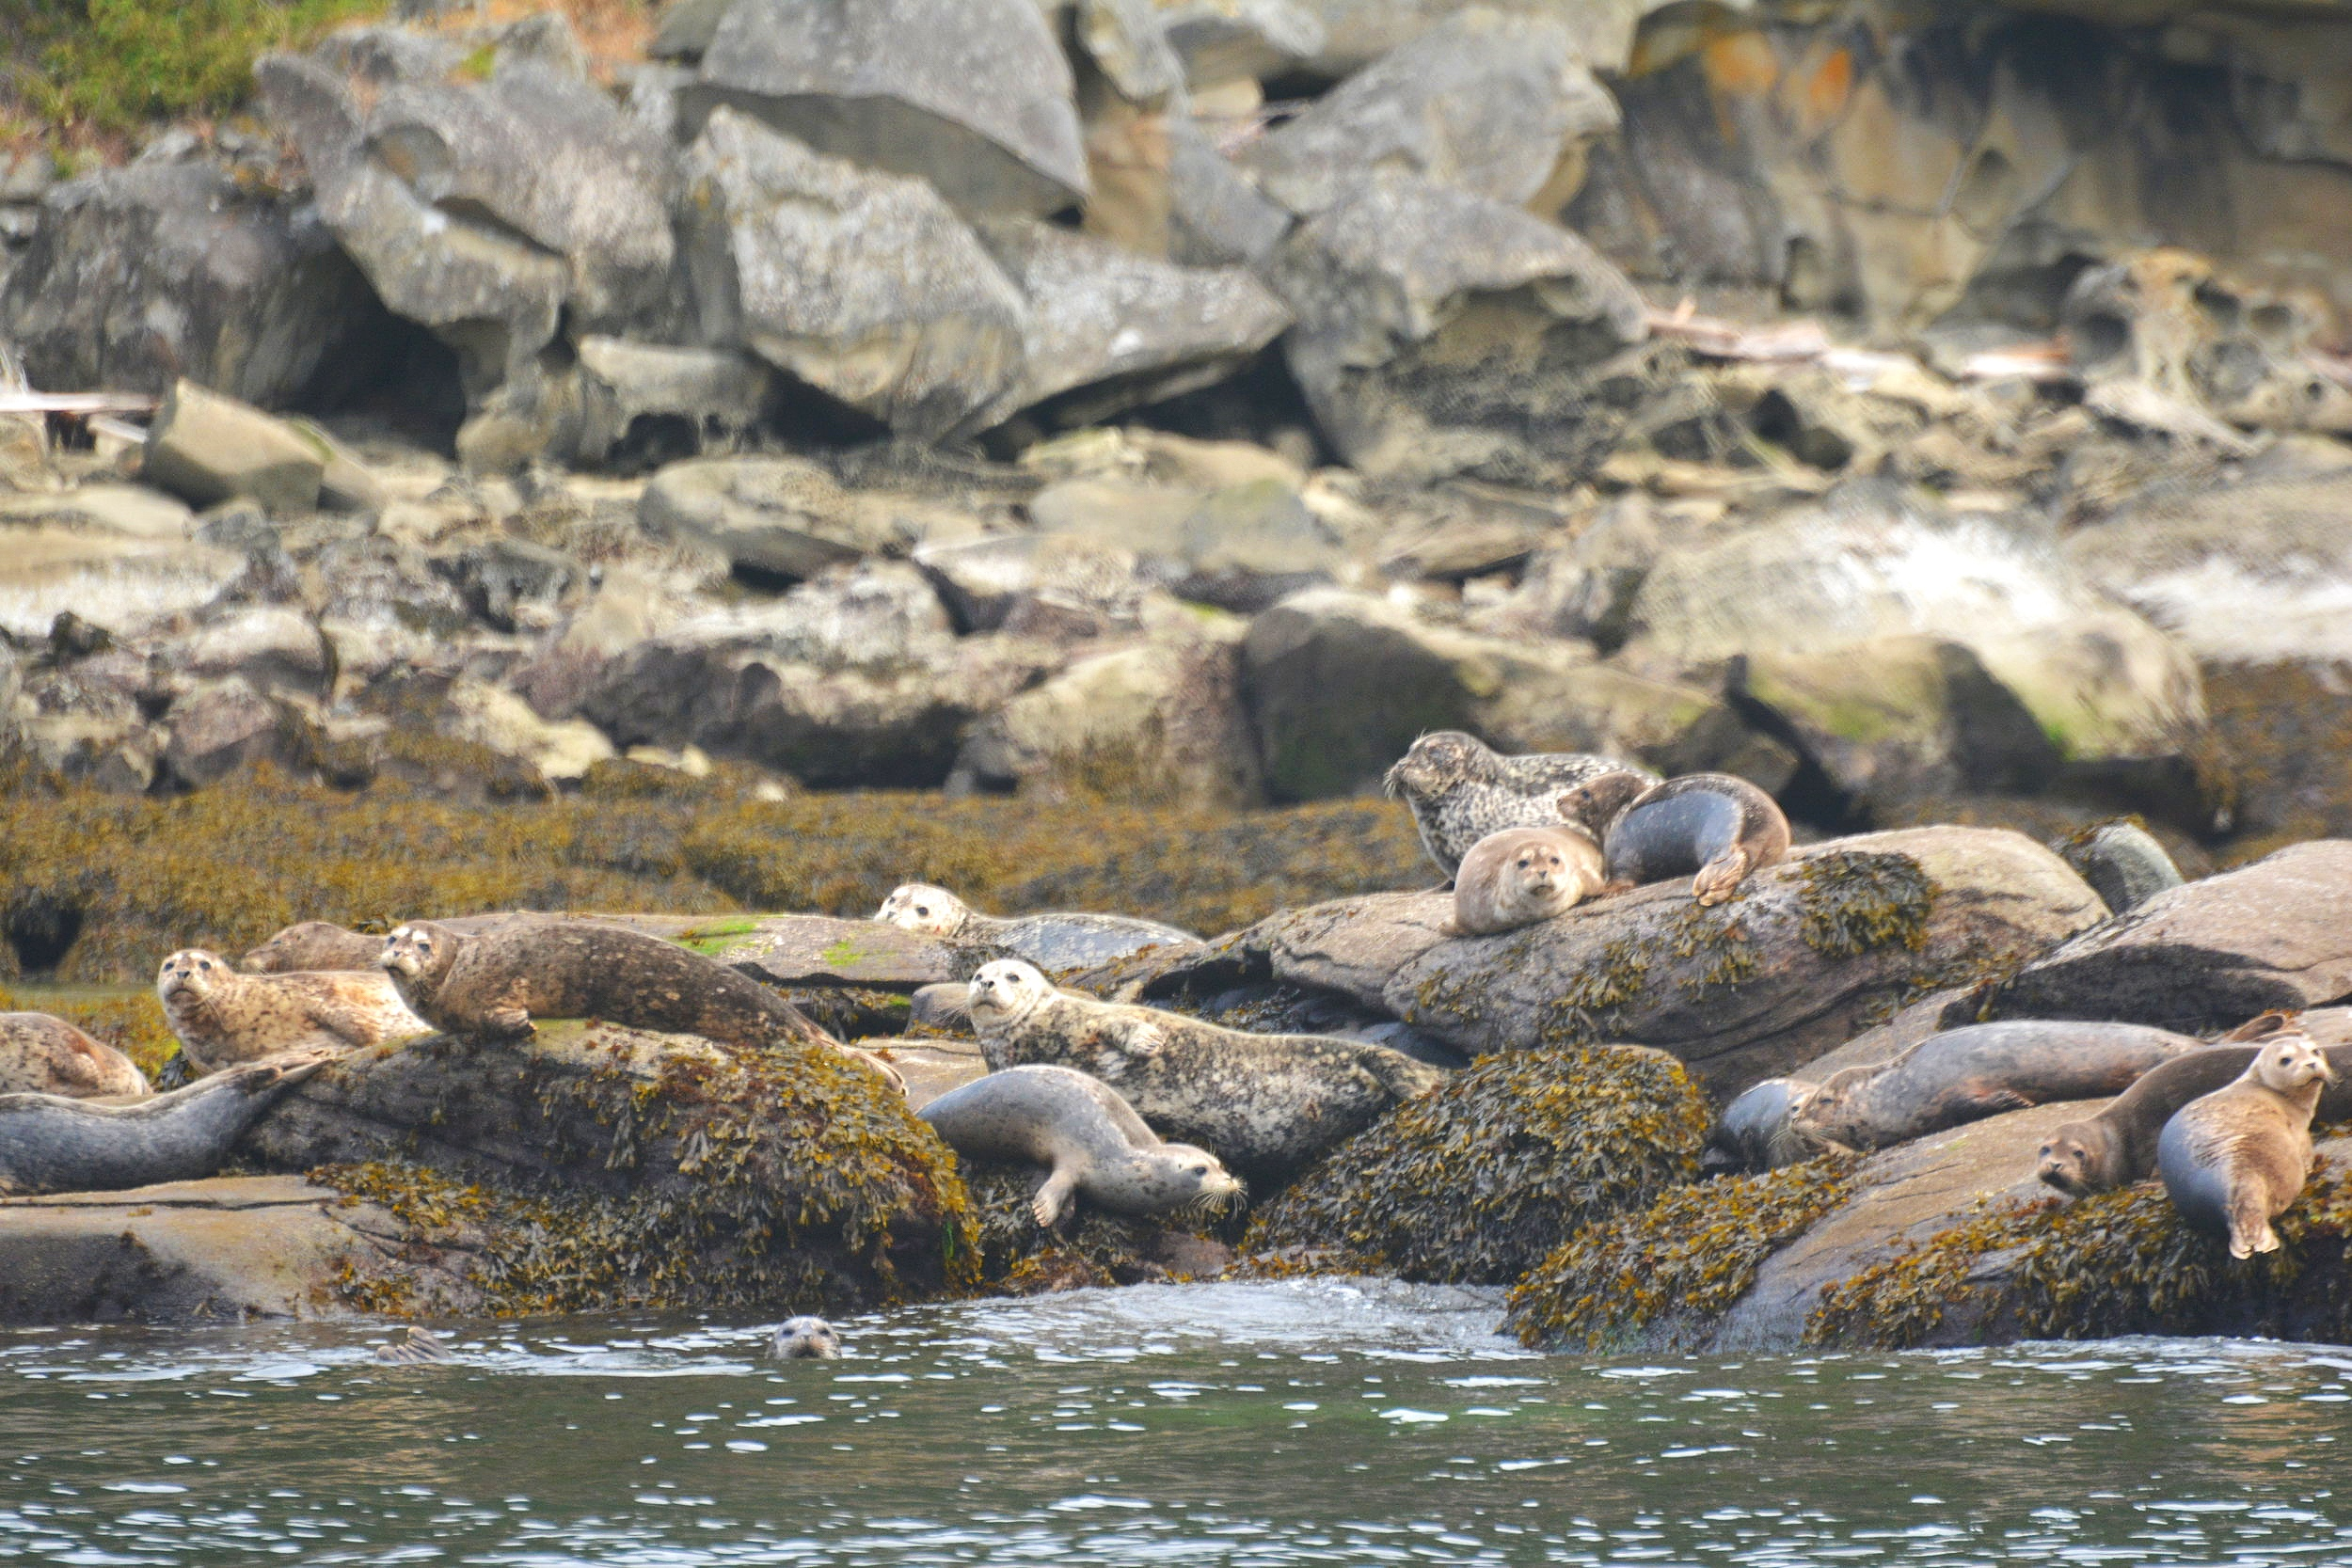 Harbour seals working on their tan. Photo by Rebeka Pirker.